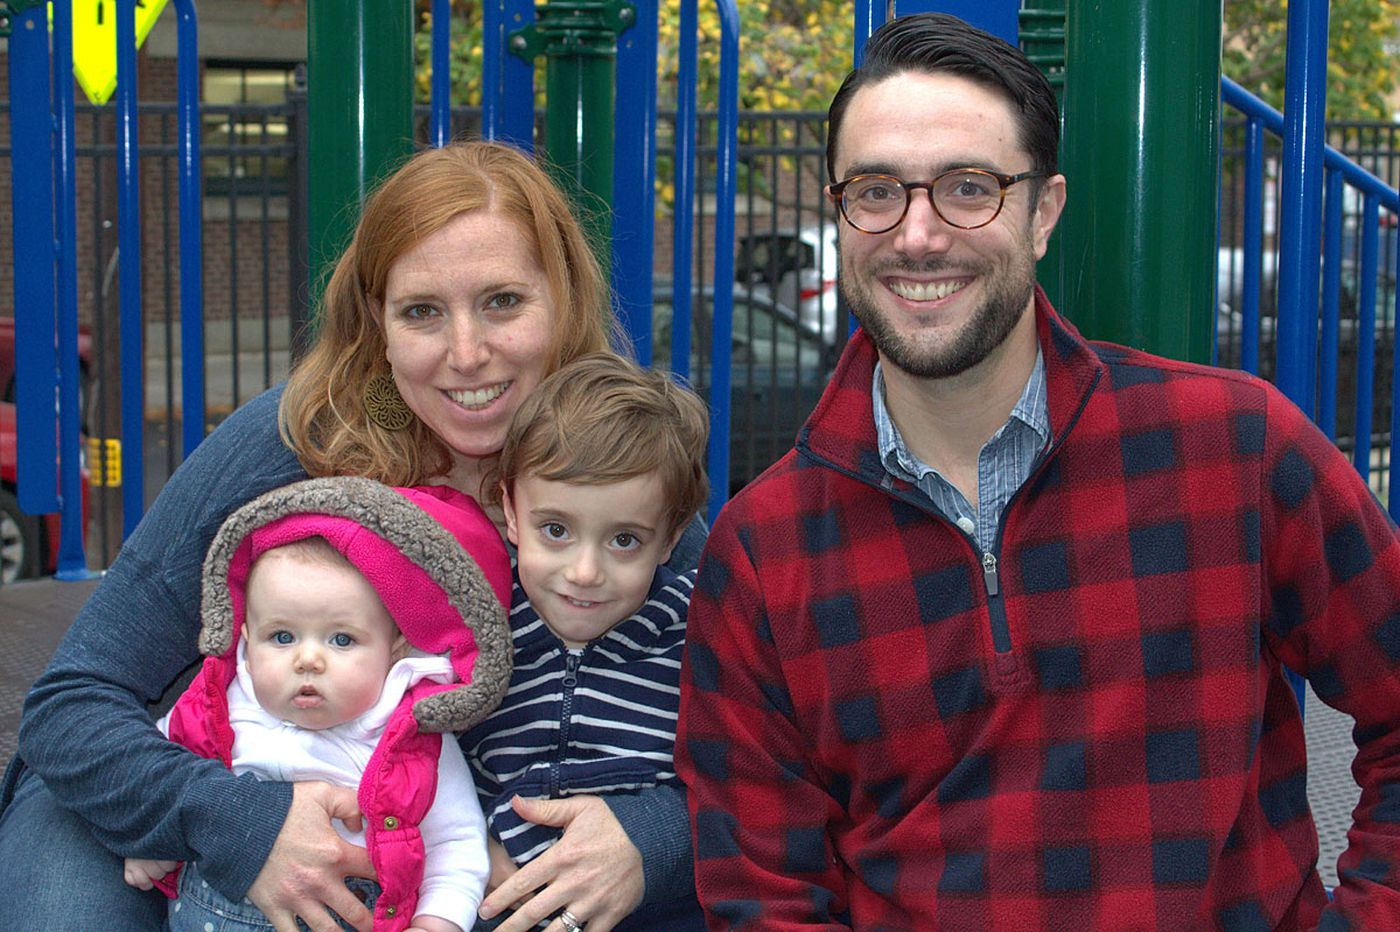 The Parent Trip: Kate DeRosa Howell and Ted Howell of South Philadelphia